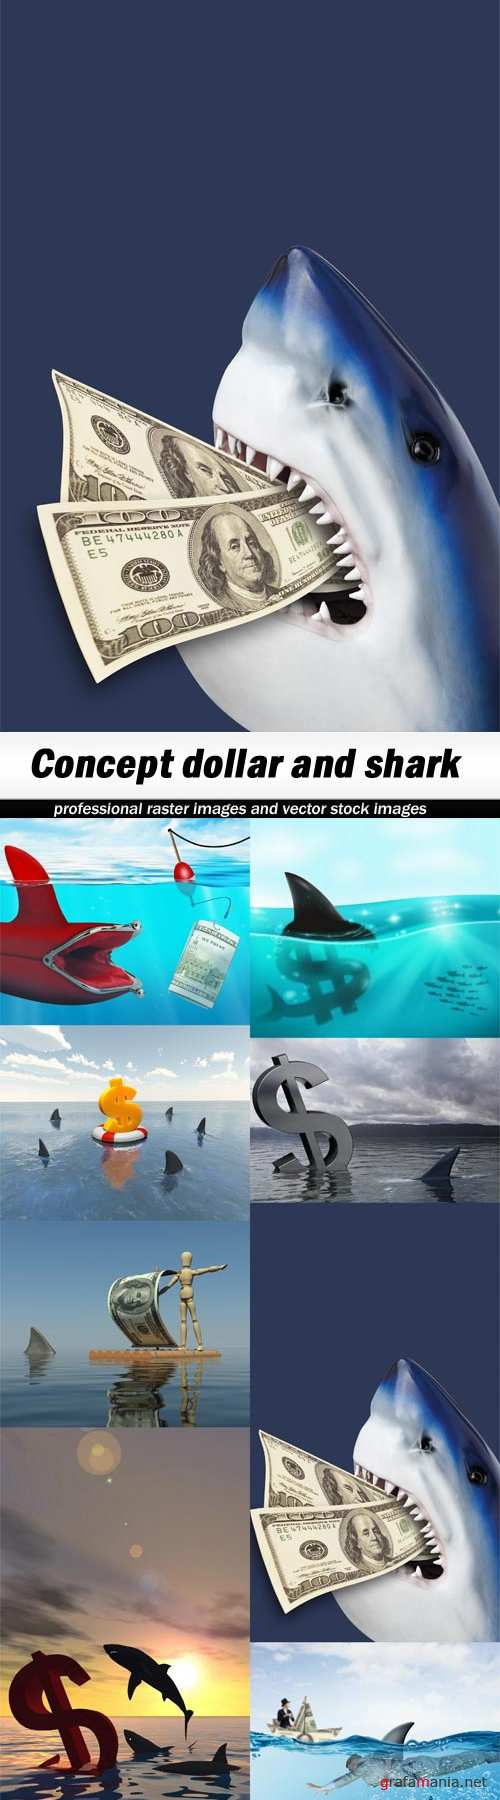 Concept dollar and shark-8xJPEGs